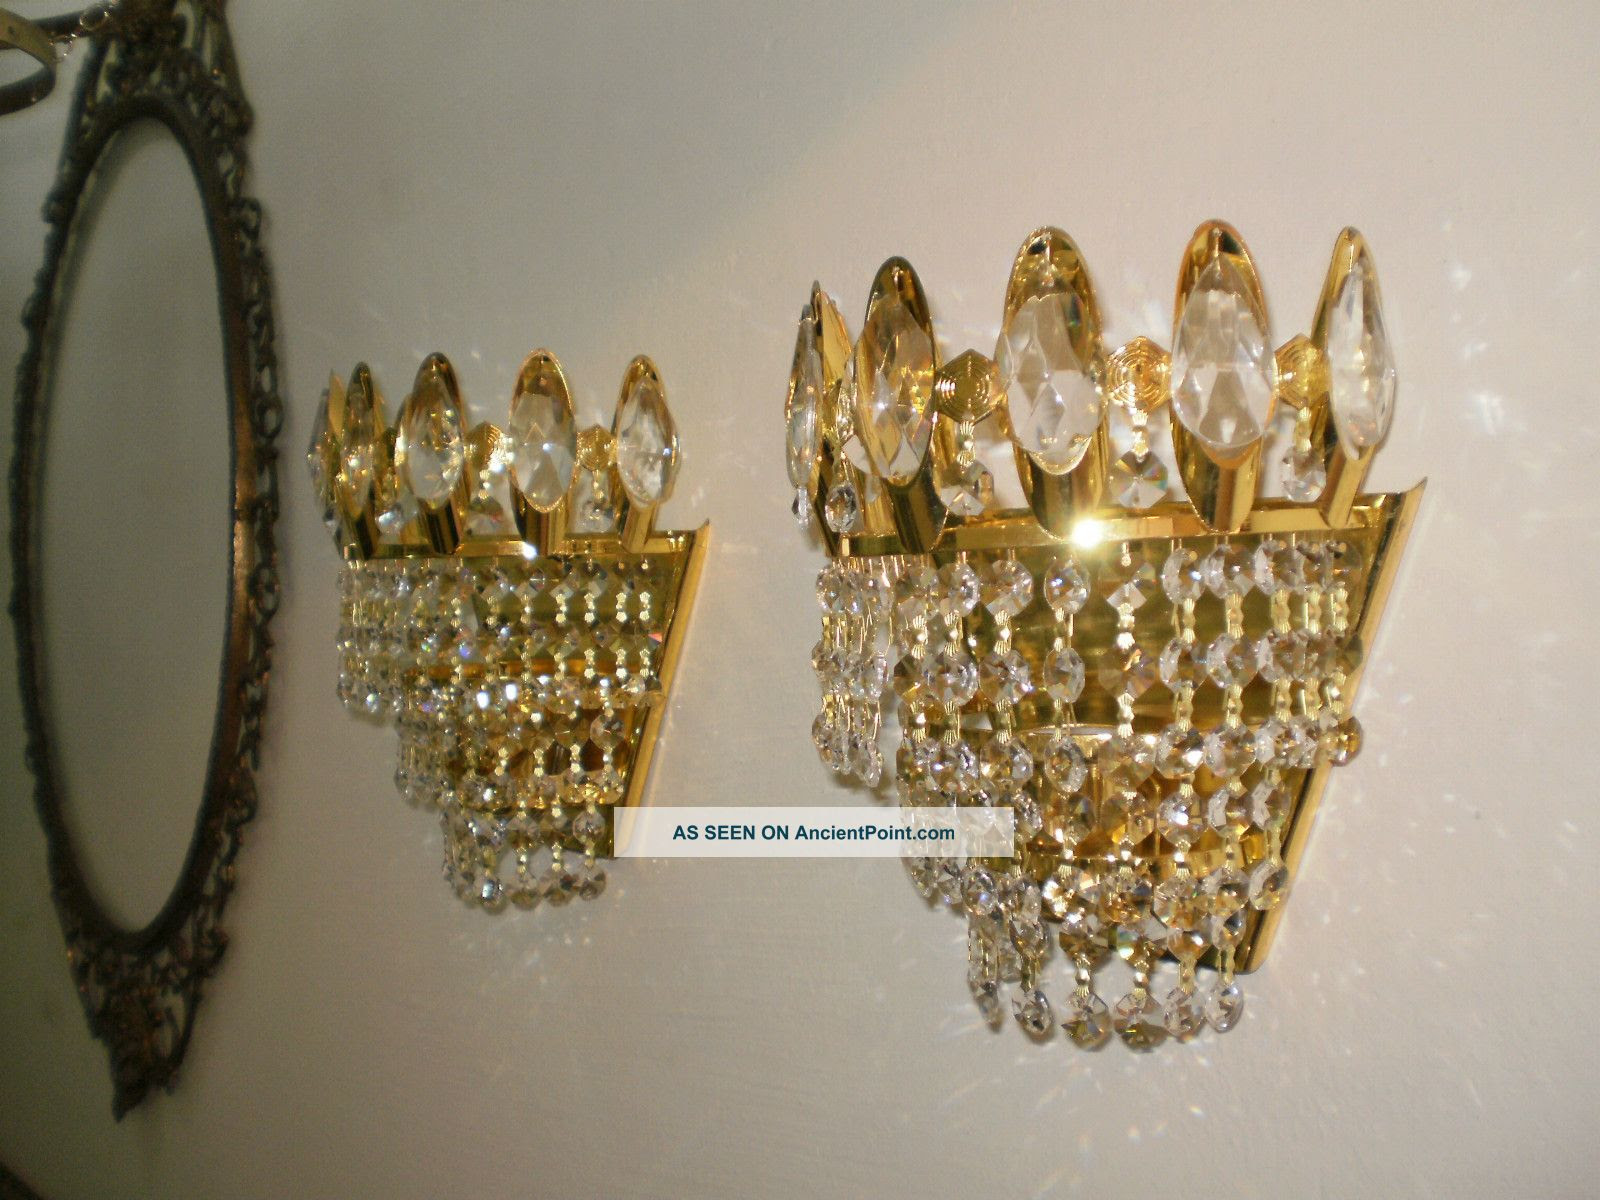 Antique Brass and Crystal Wall Sconce